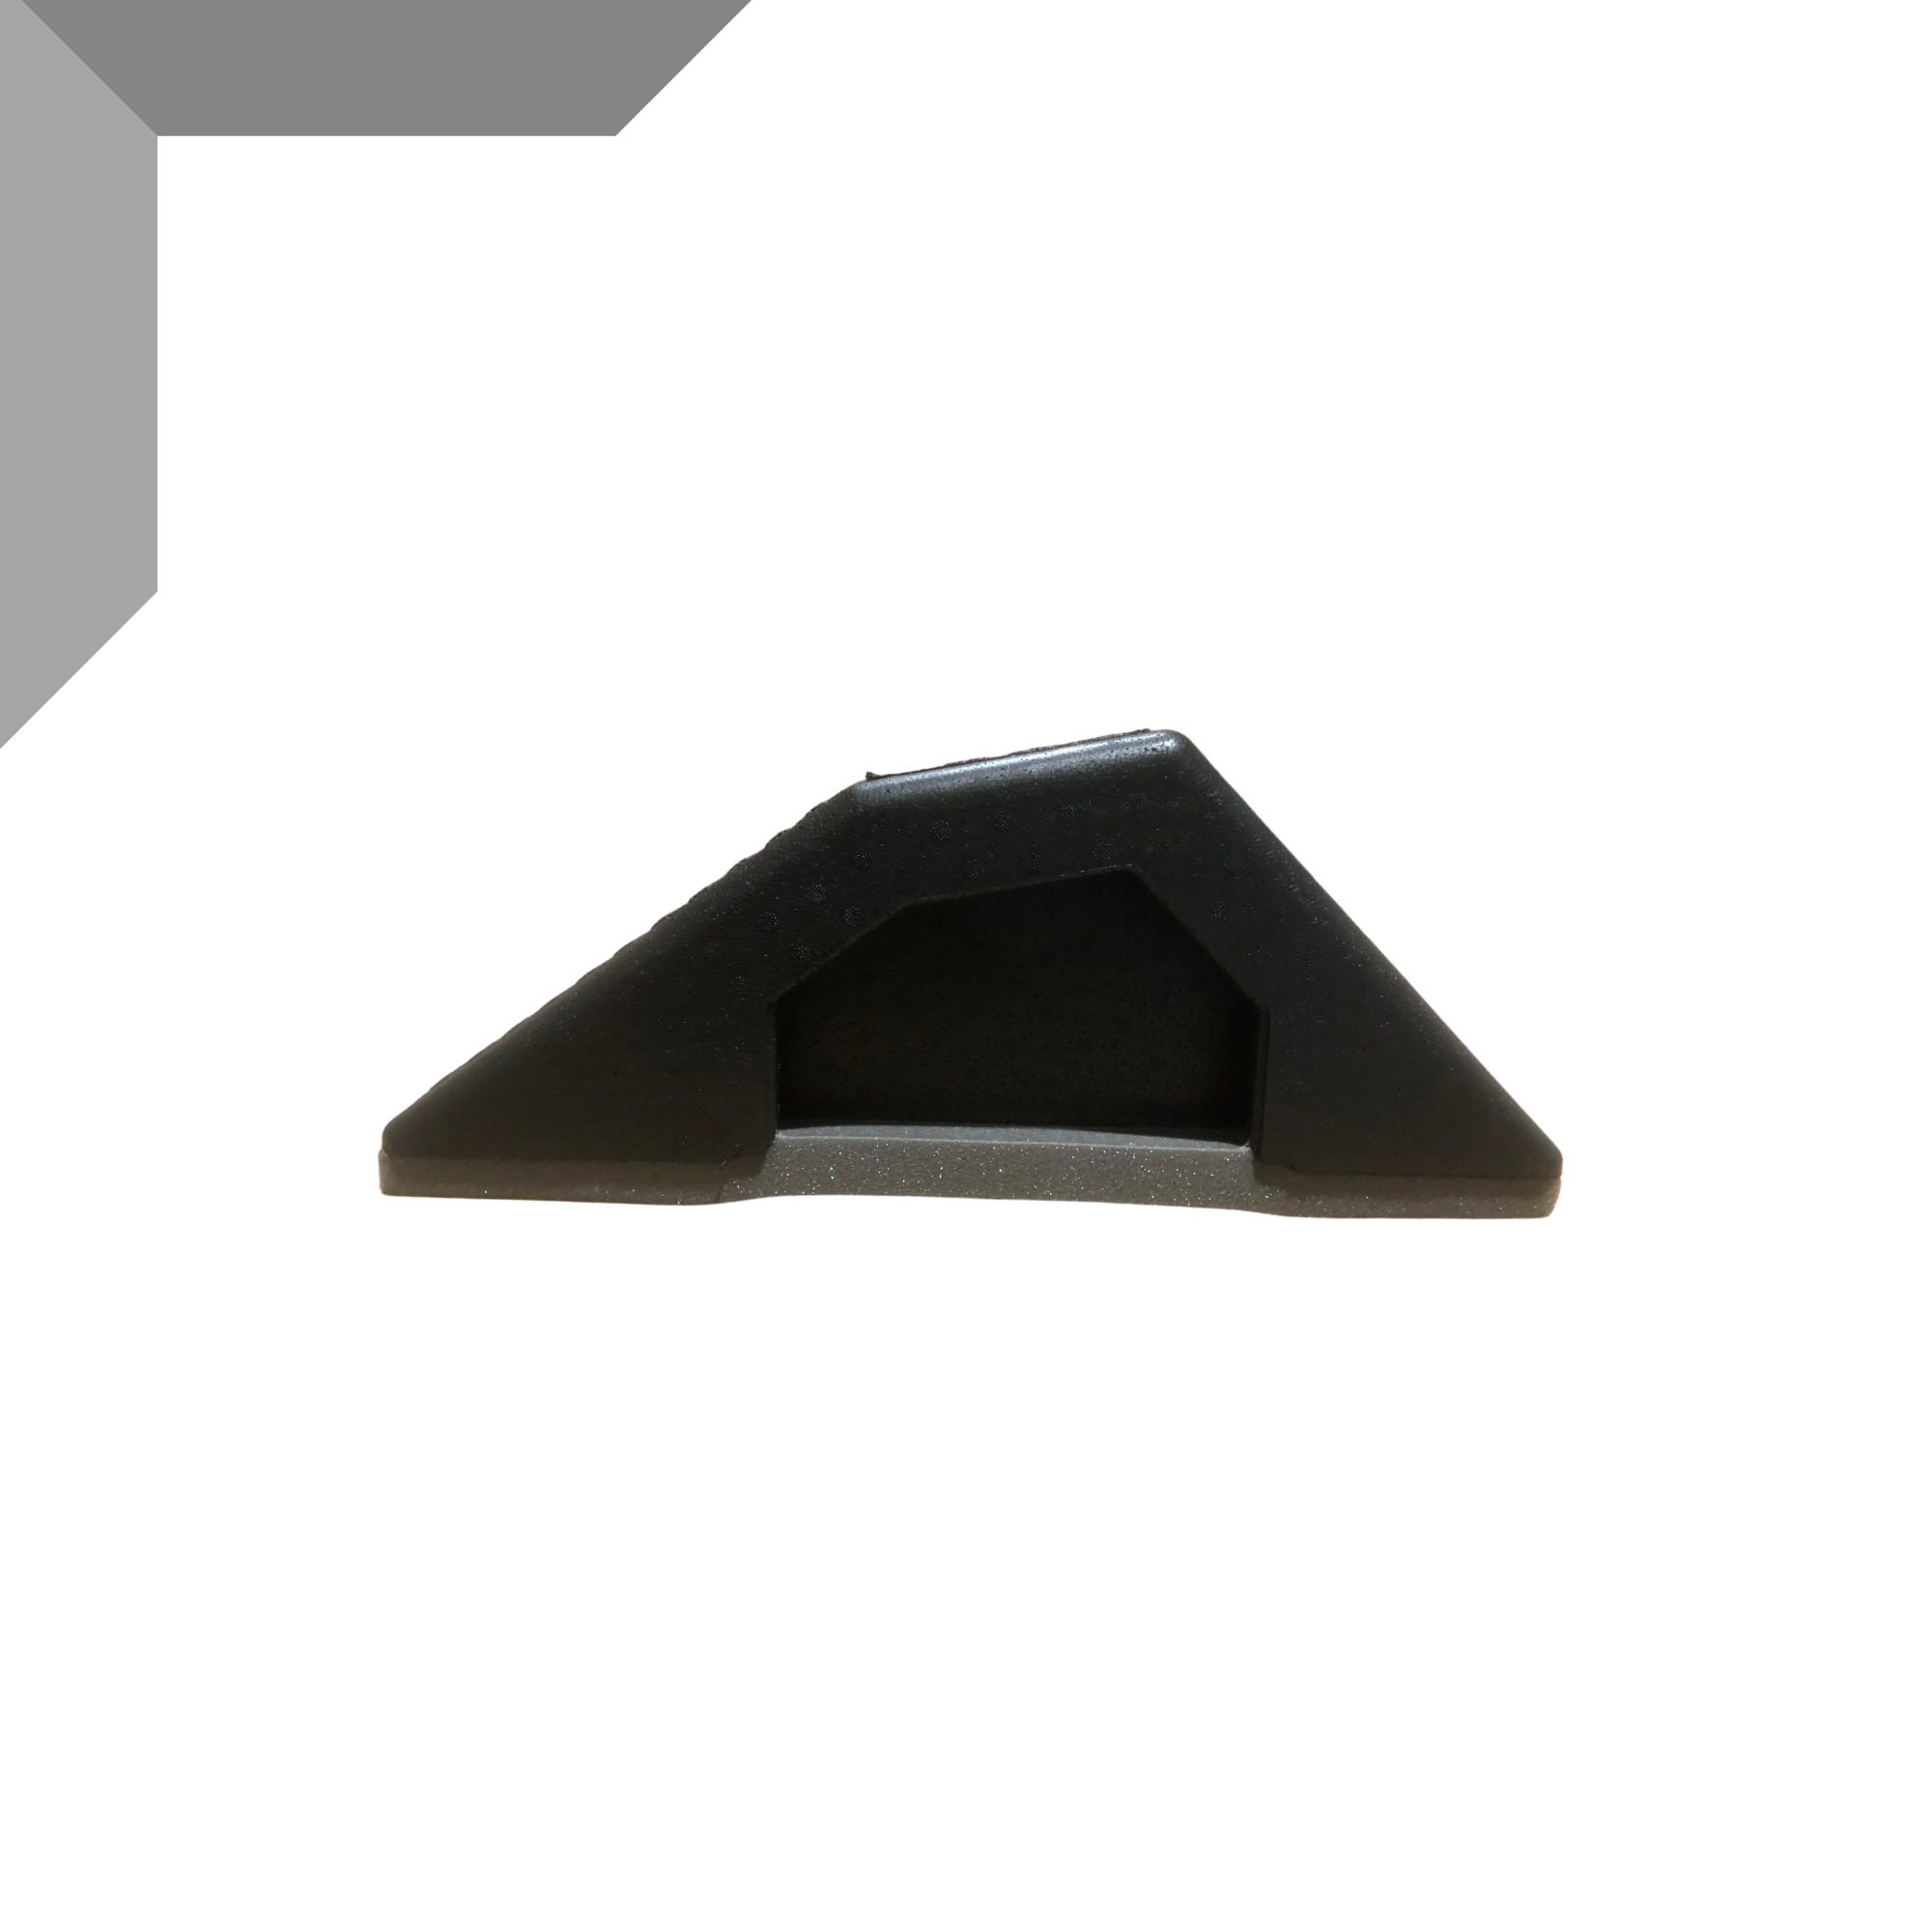 The Pitch Hopper Patented Roof Wedge